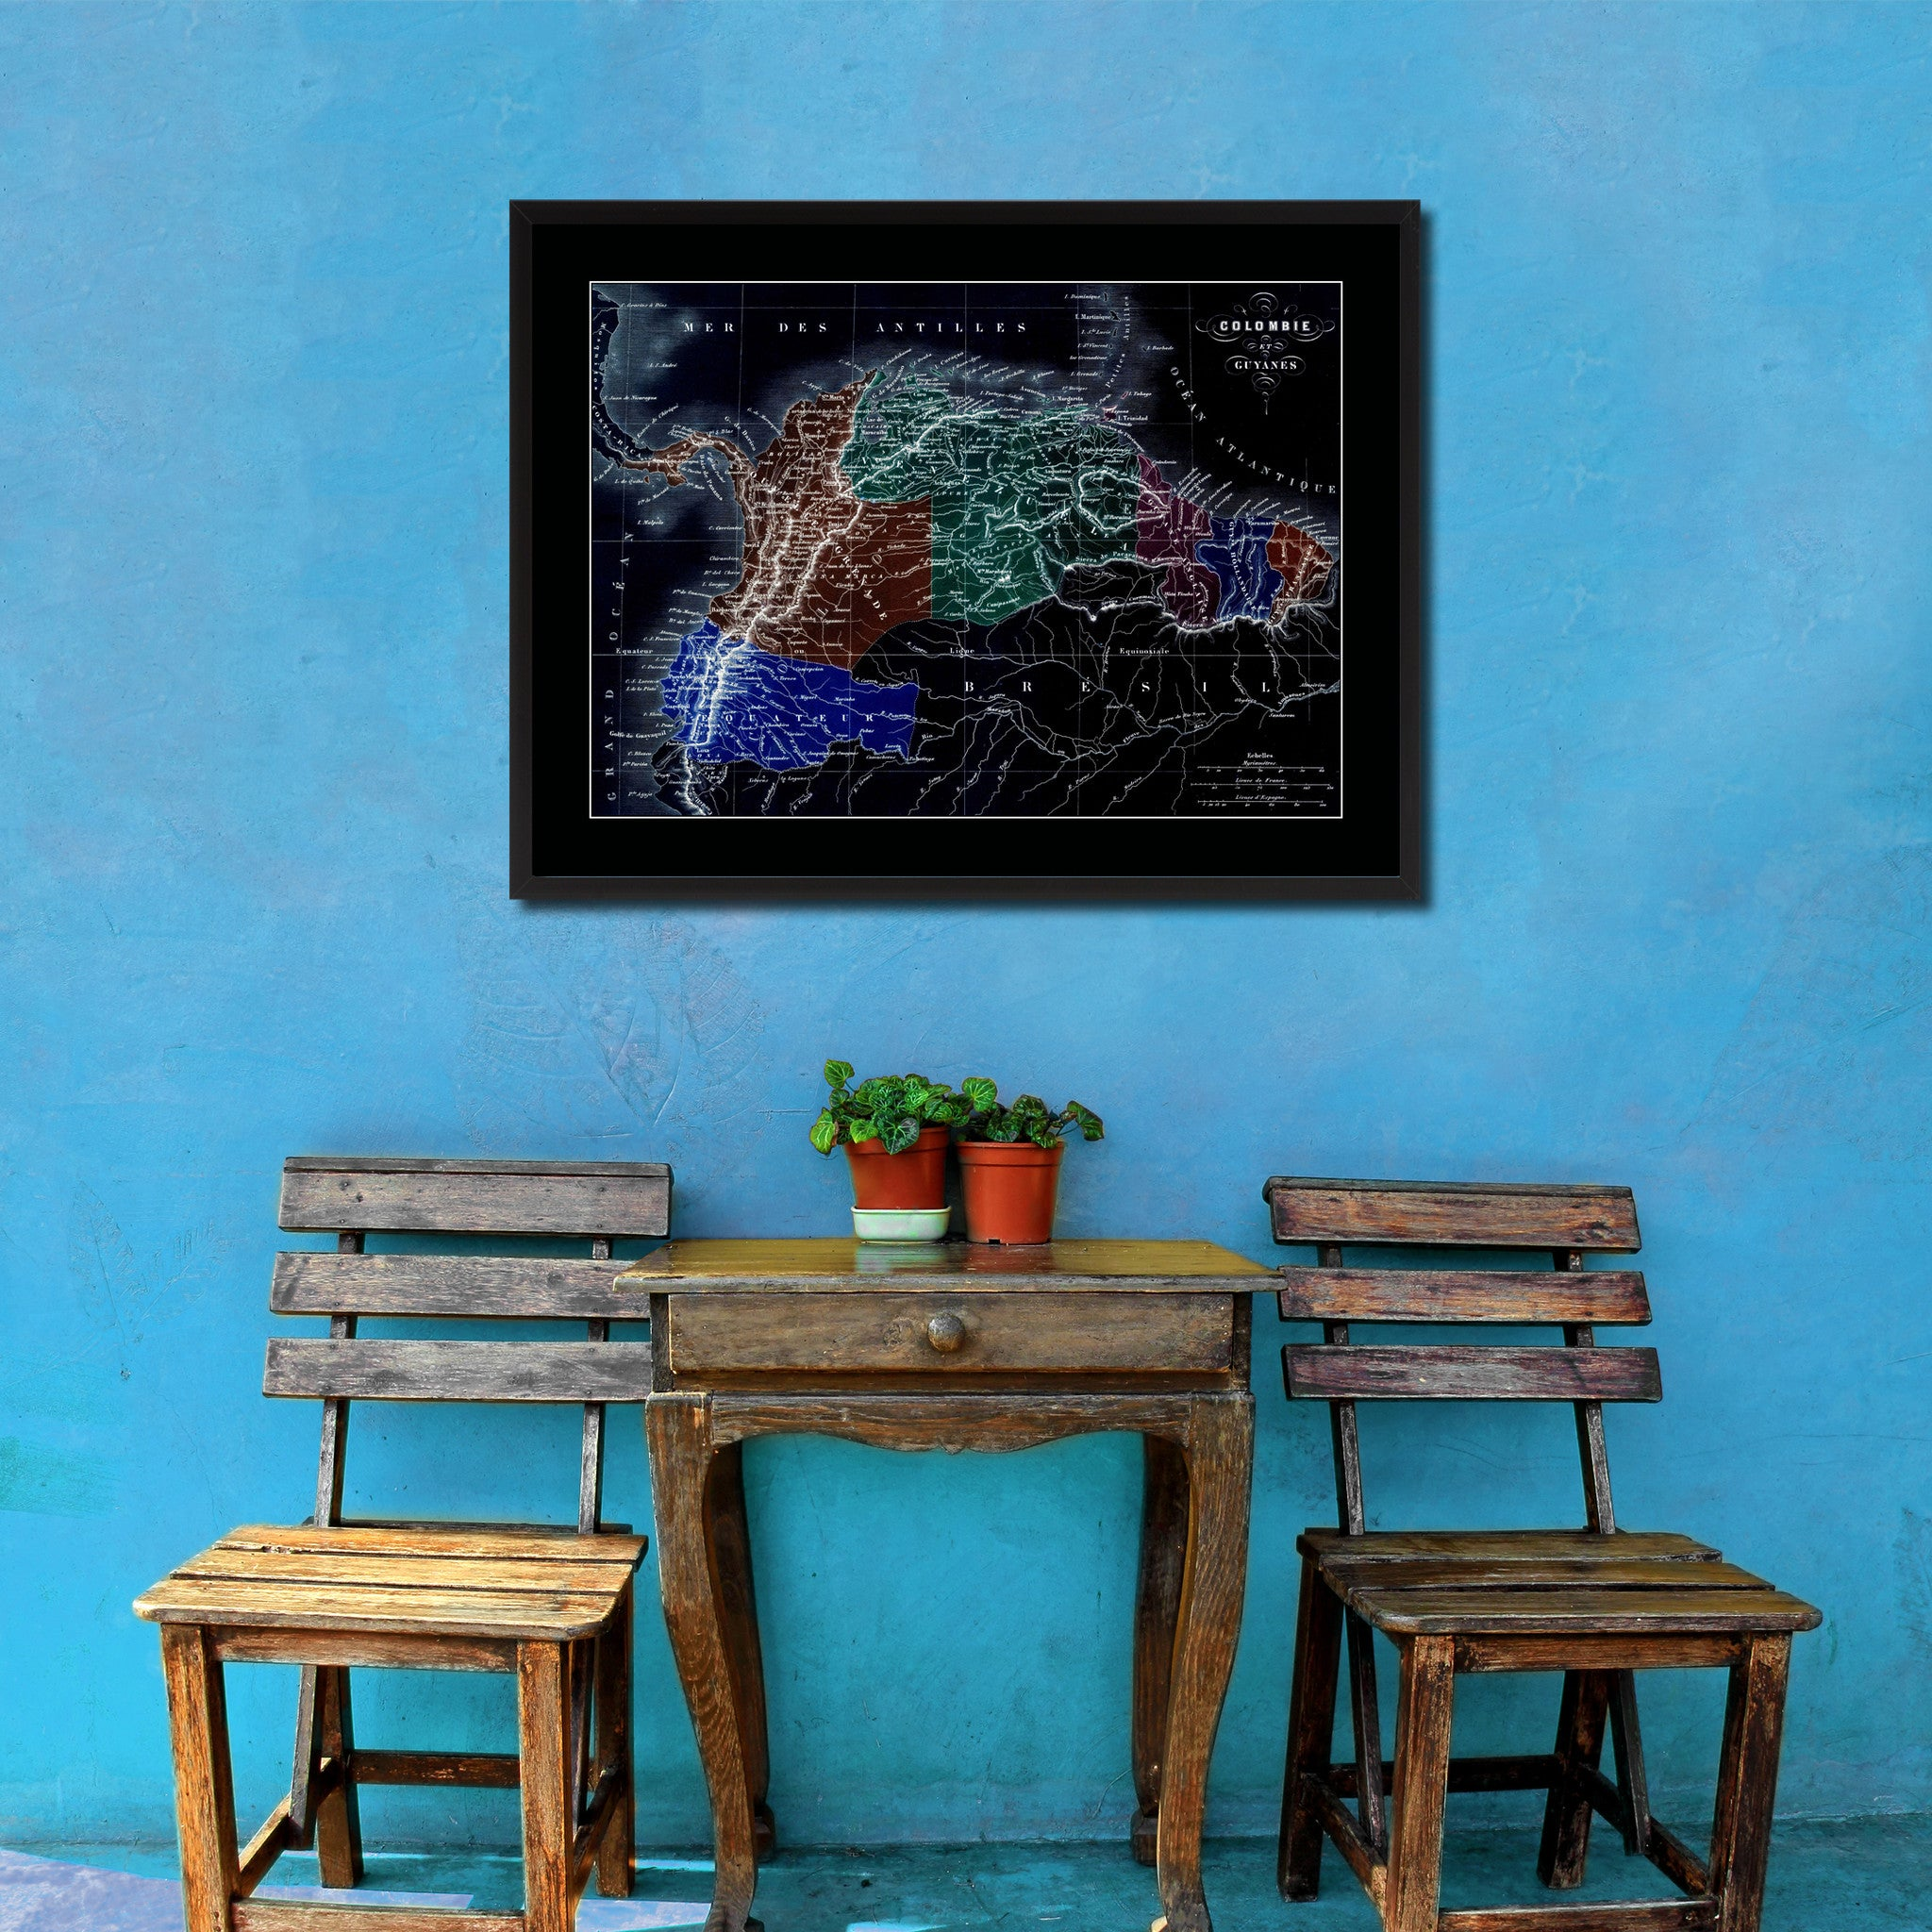 Columbia Venezuela Guianna Vintage Vivid Color Map Canvas Print, Picture Frame Home Decor Wall Art Office Decoration Gift Ideas